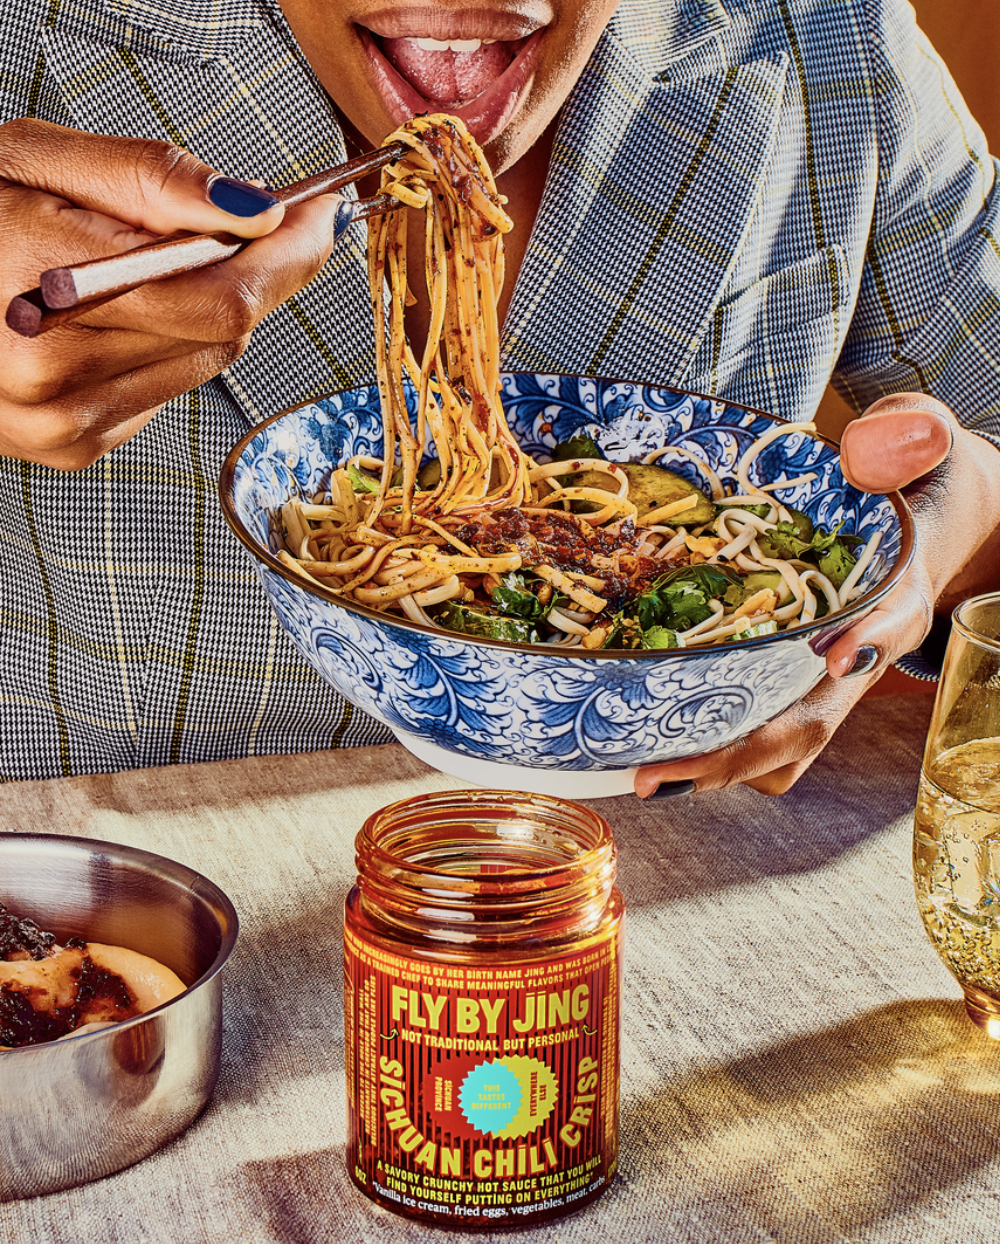 Model eating noodles with Fly BY Jing Sichuan Chili Crisp sauce